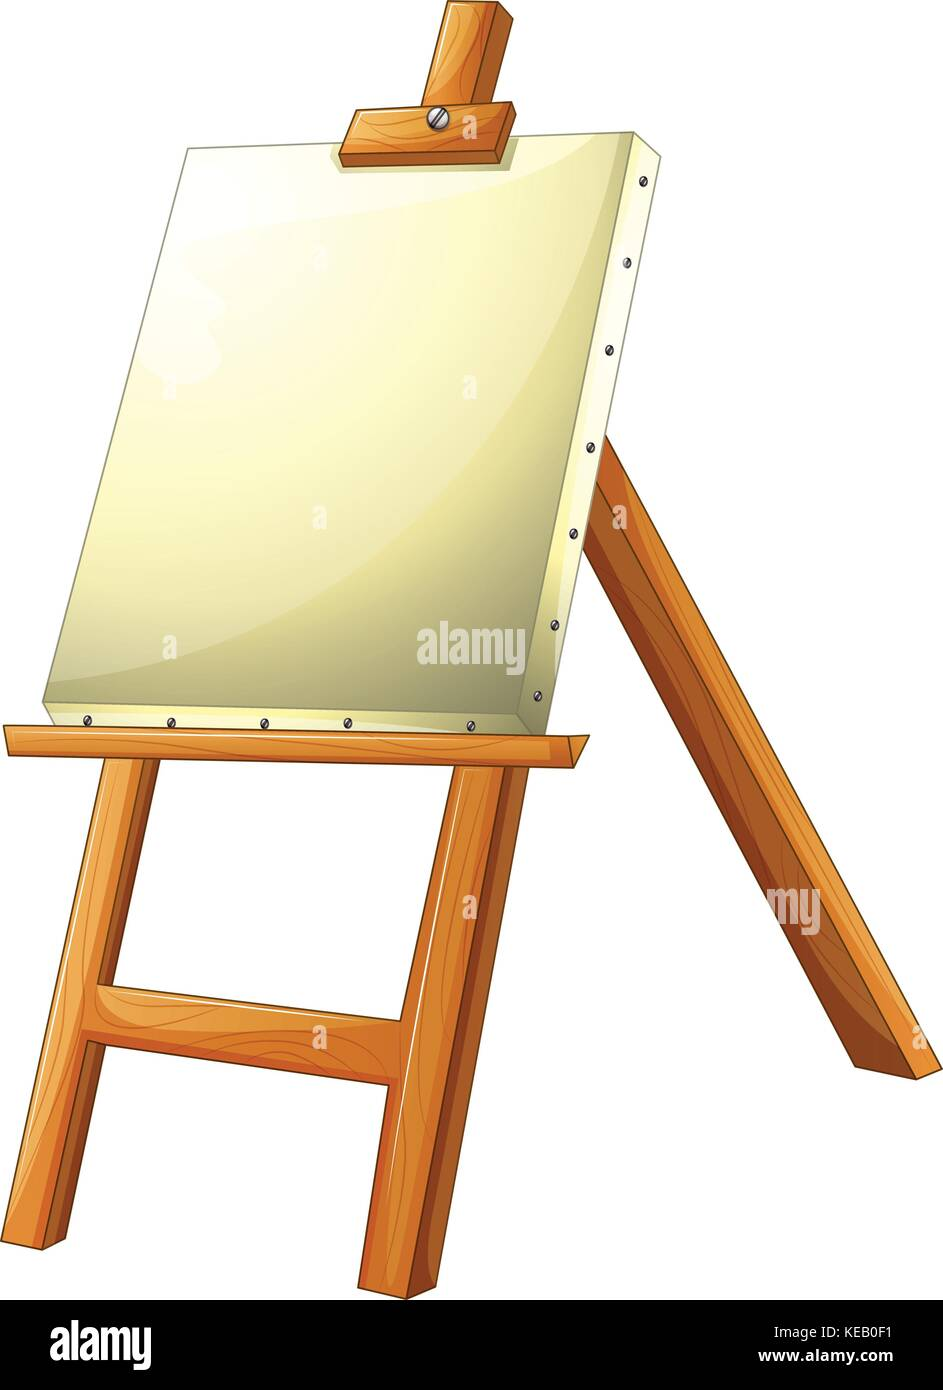 Blank Canvas On Easel Stock Vector Images - Alamy